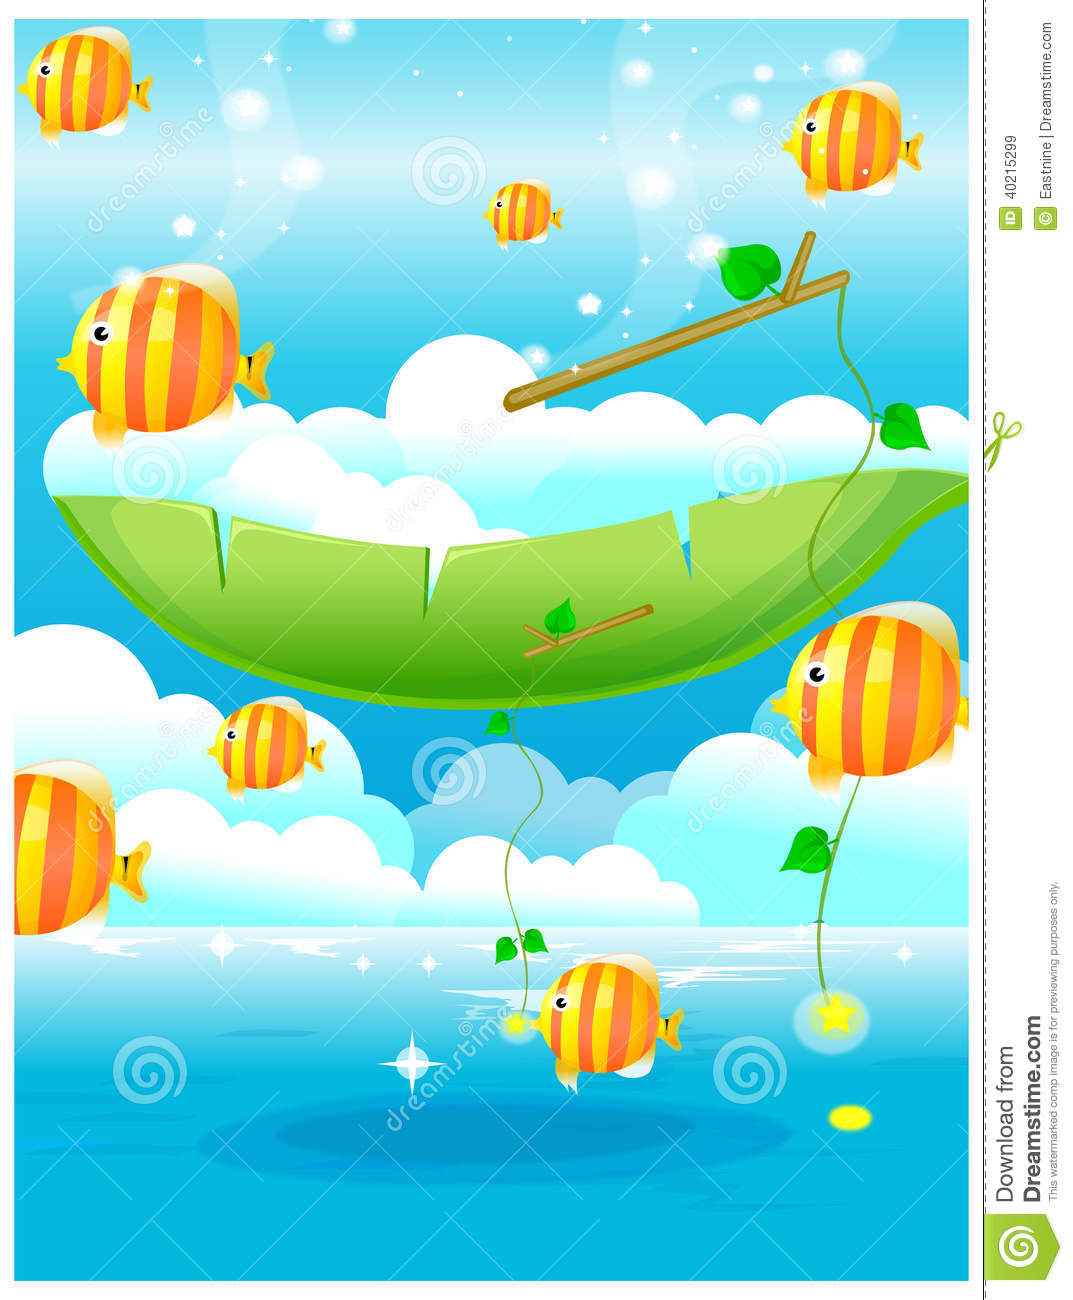 Fish out of water stock illustration image 40215299 for Dream about fish out of water